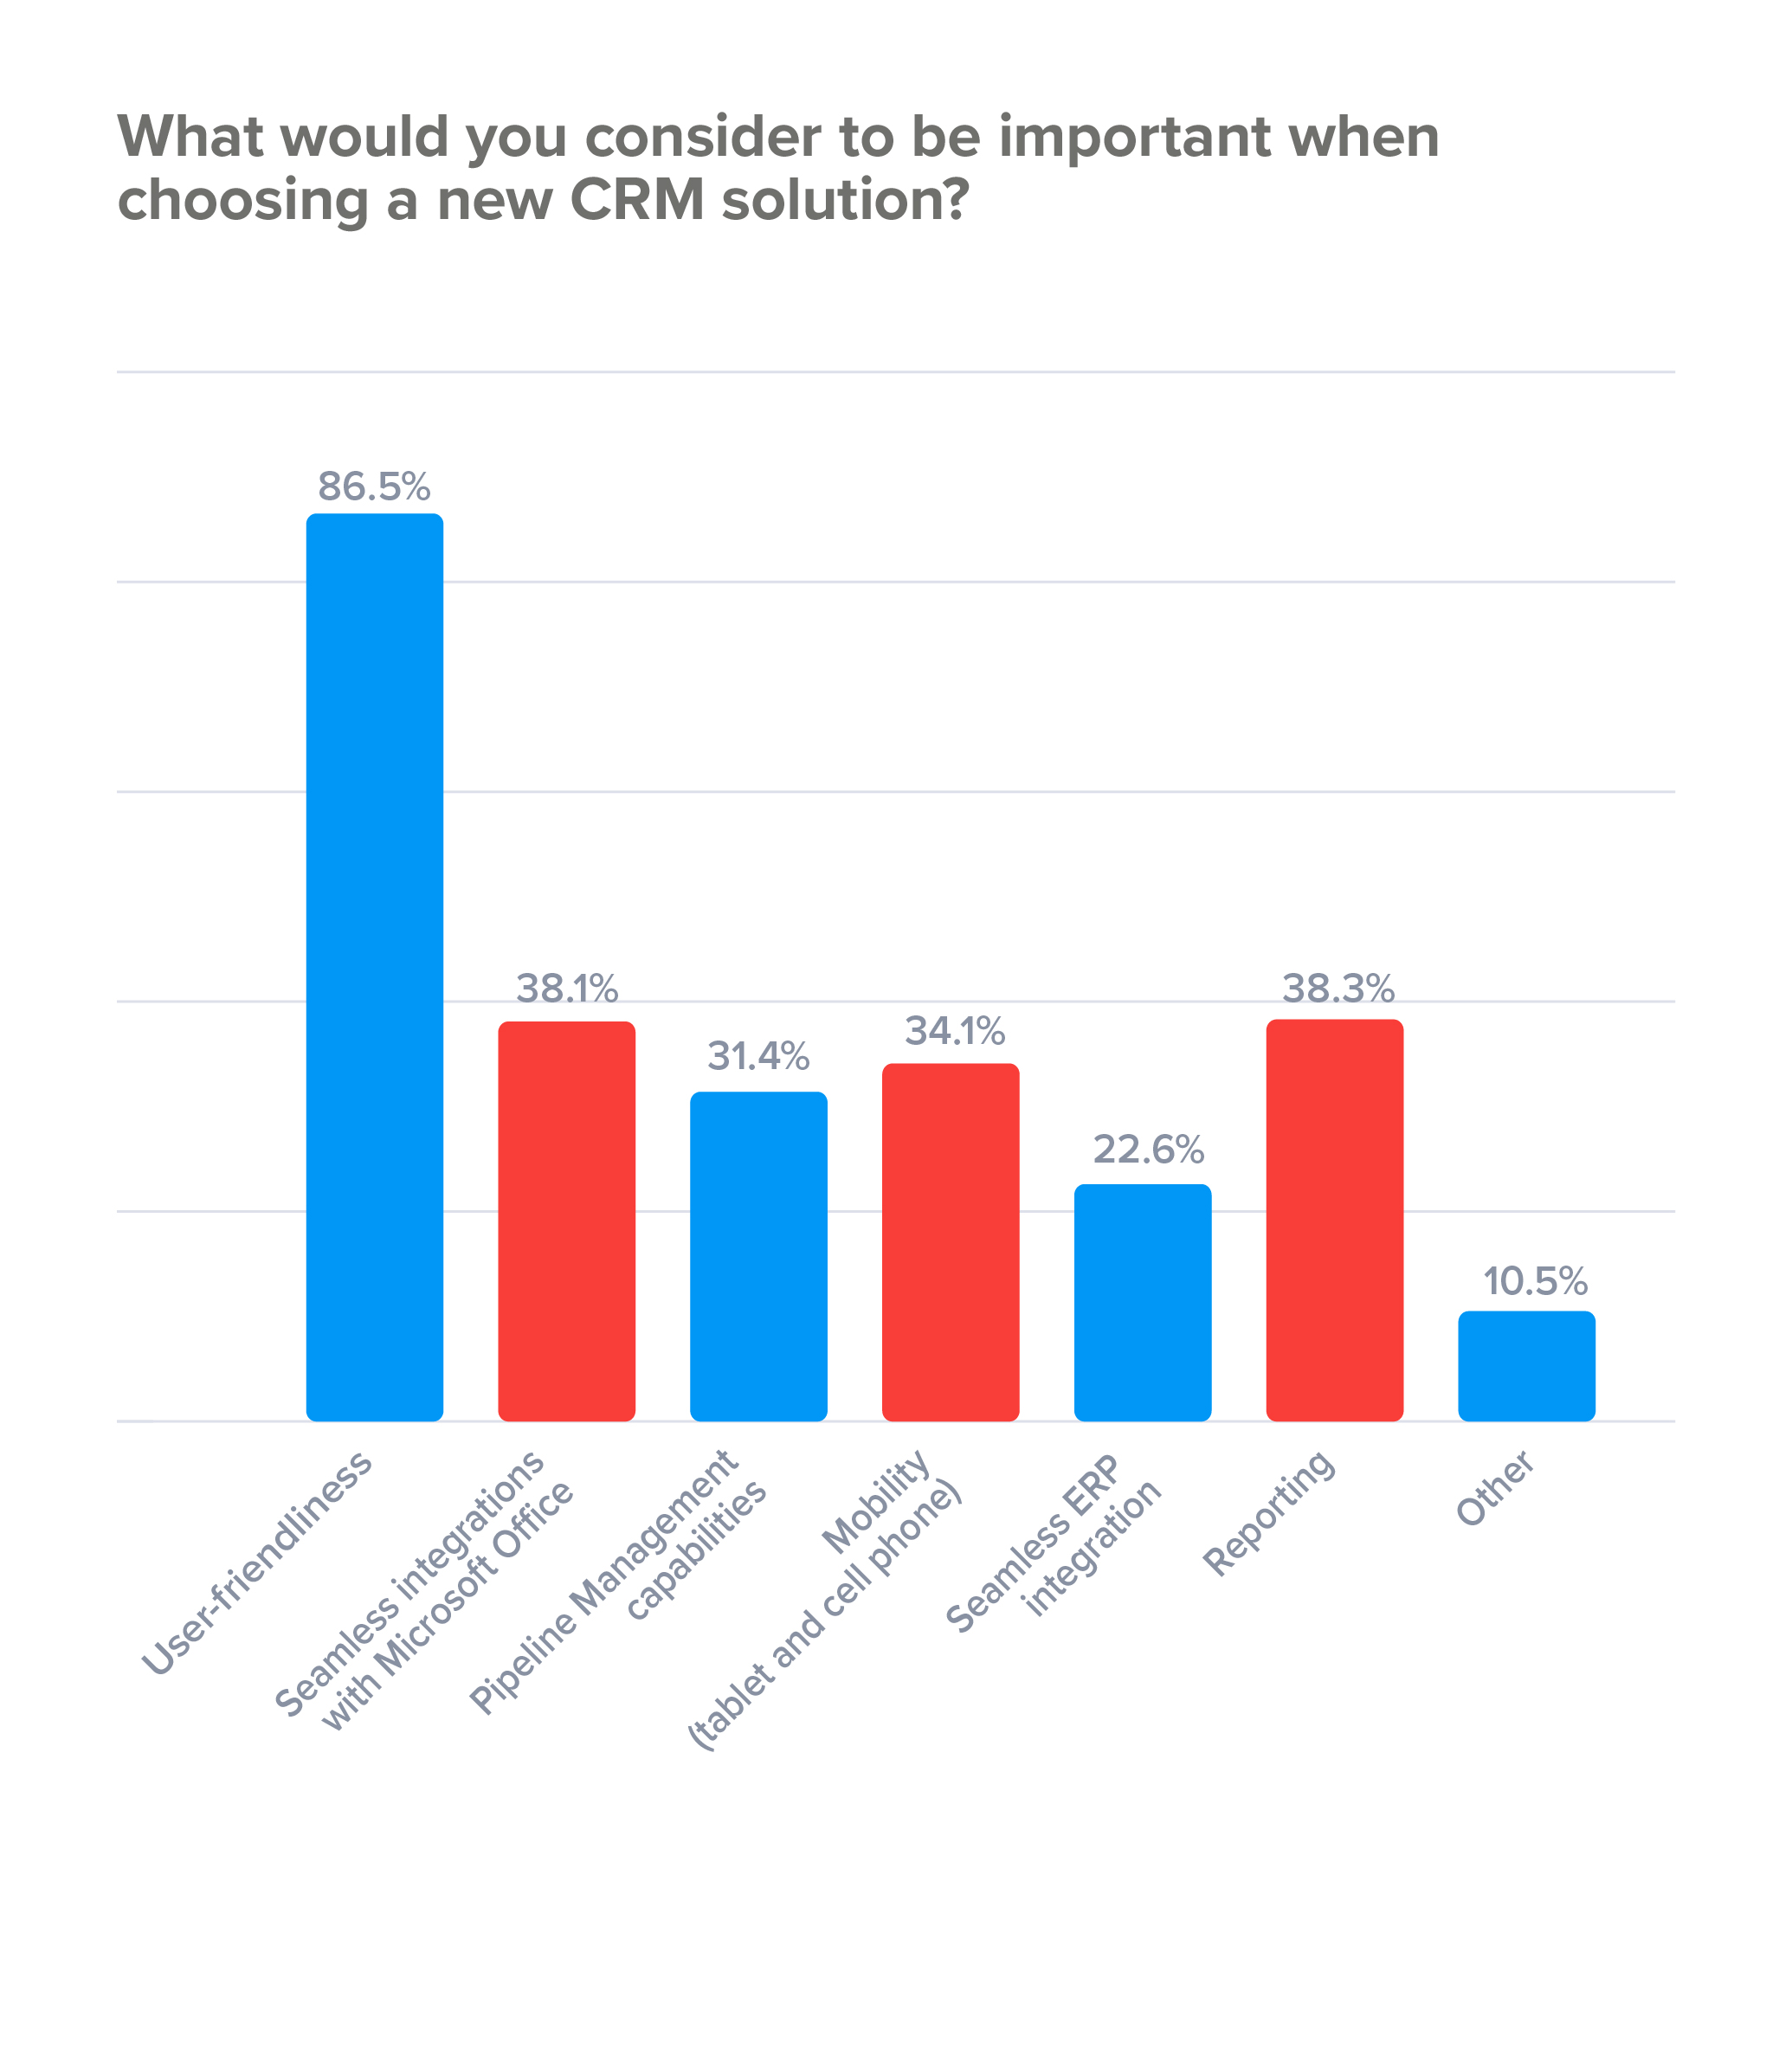 Important factors in choosing a new CRM solution